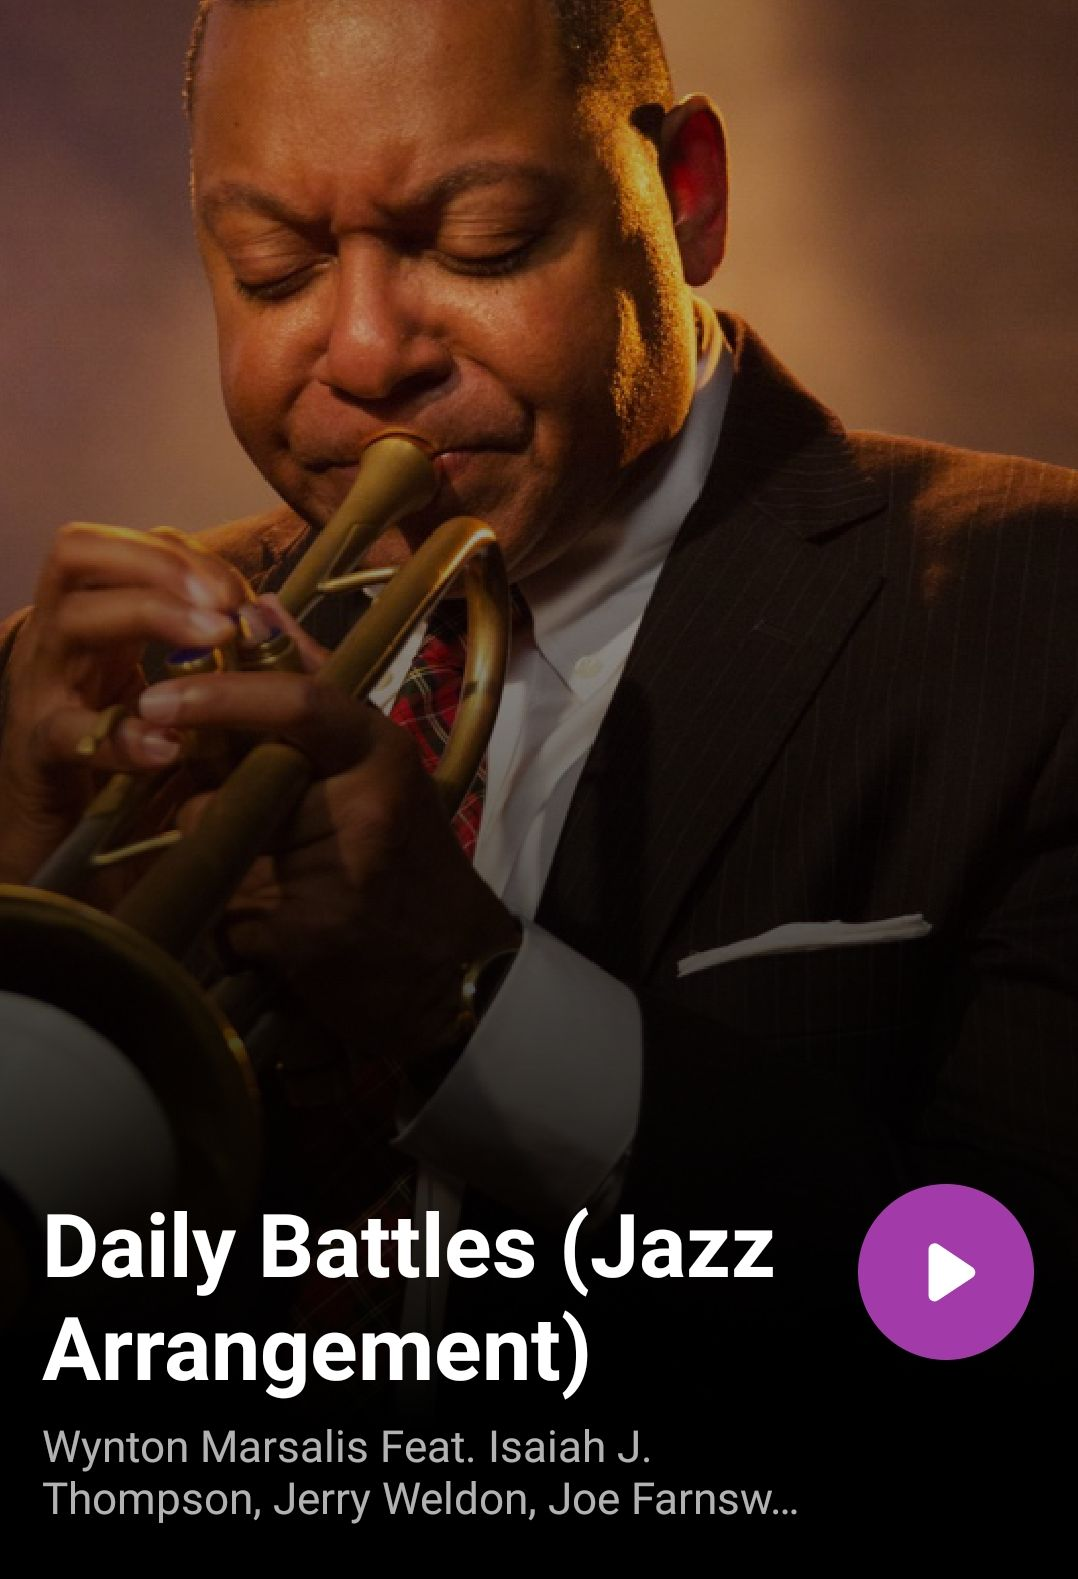 Wynton Marsalis - Daily Battles - Jazz arangement